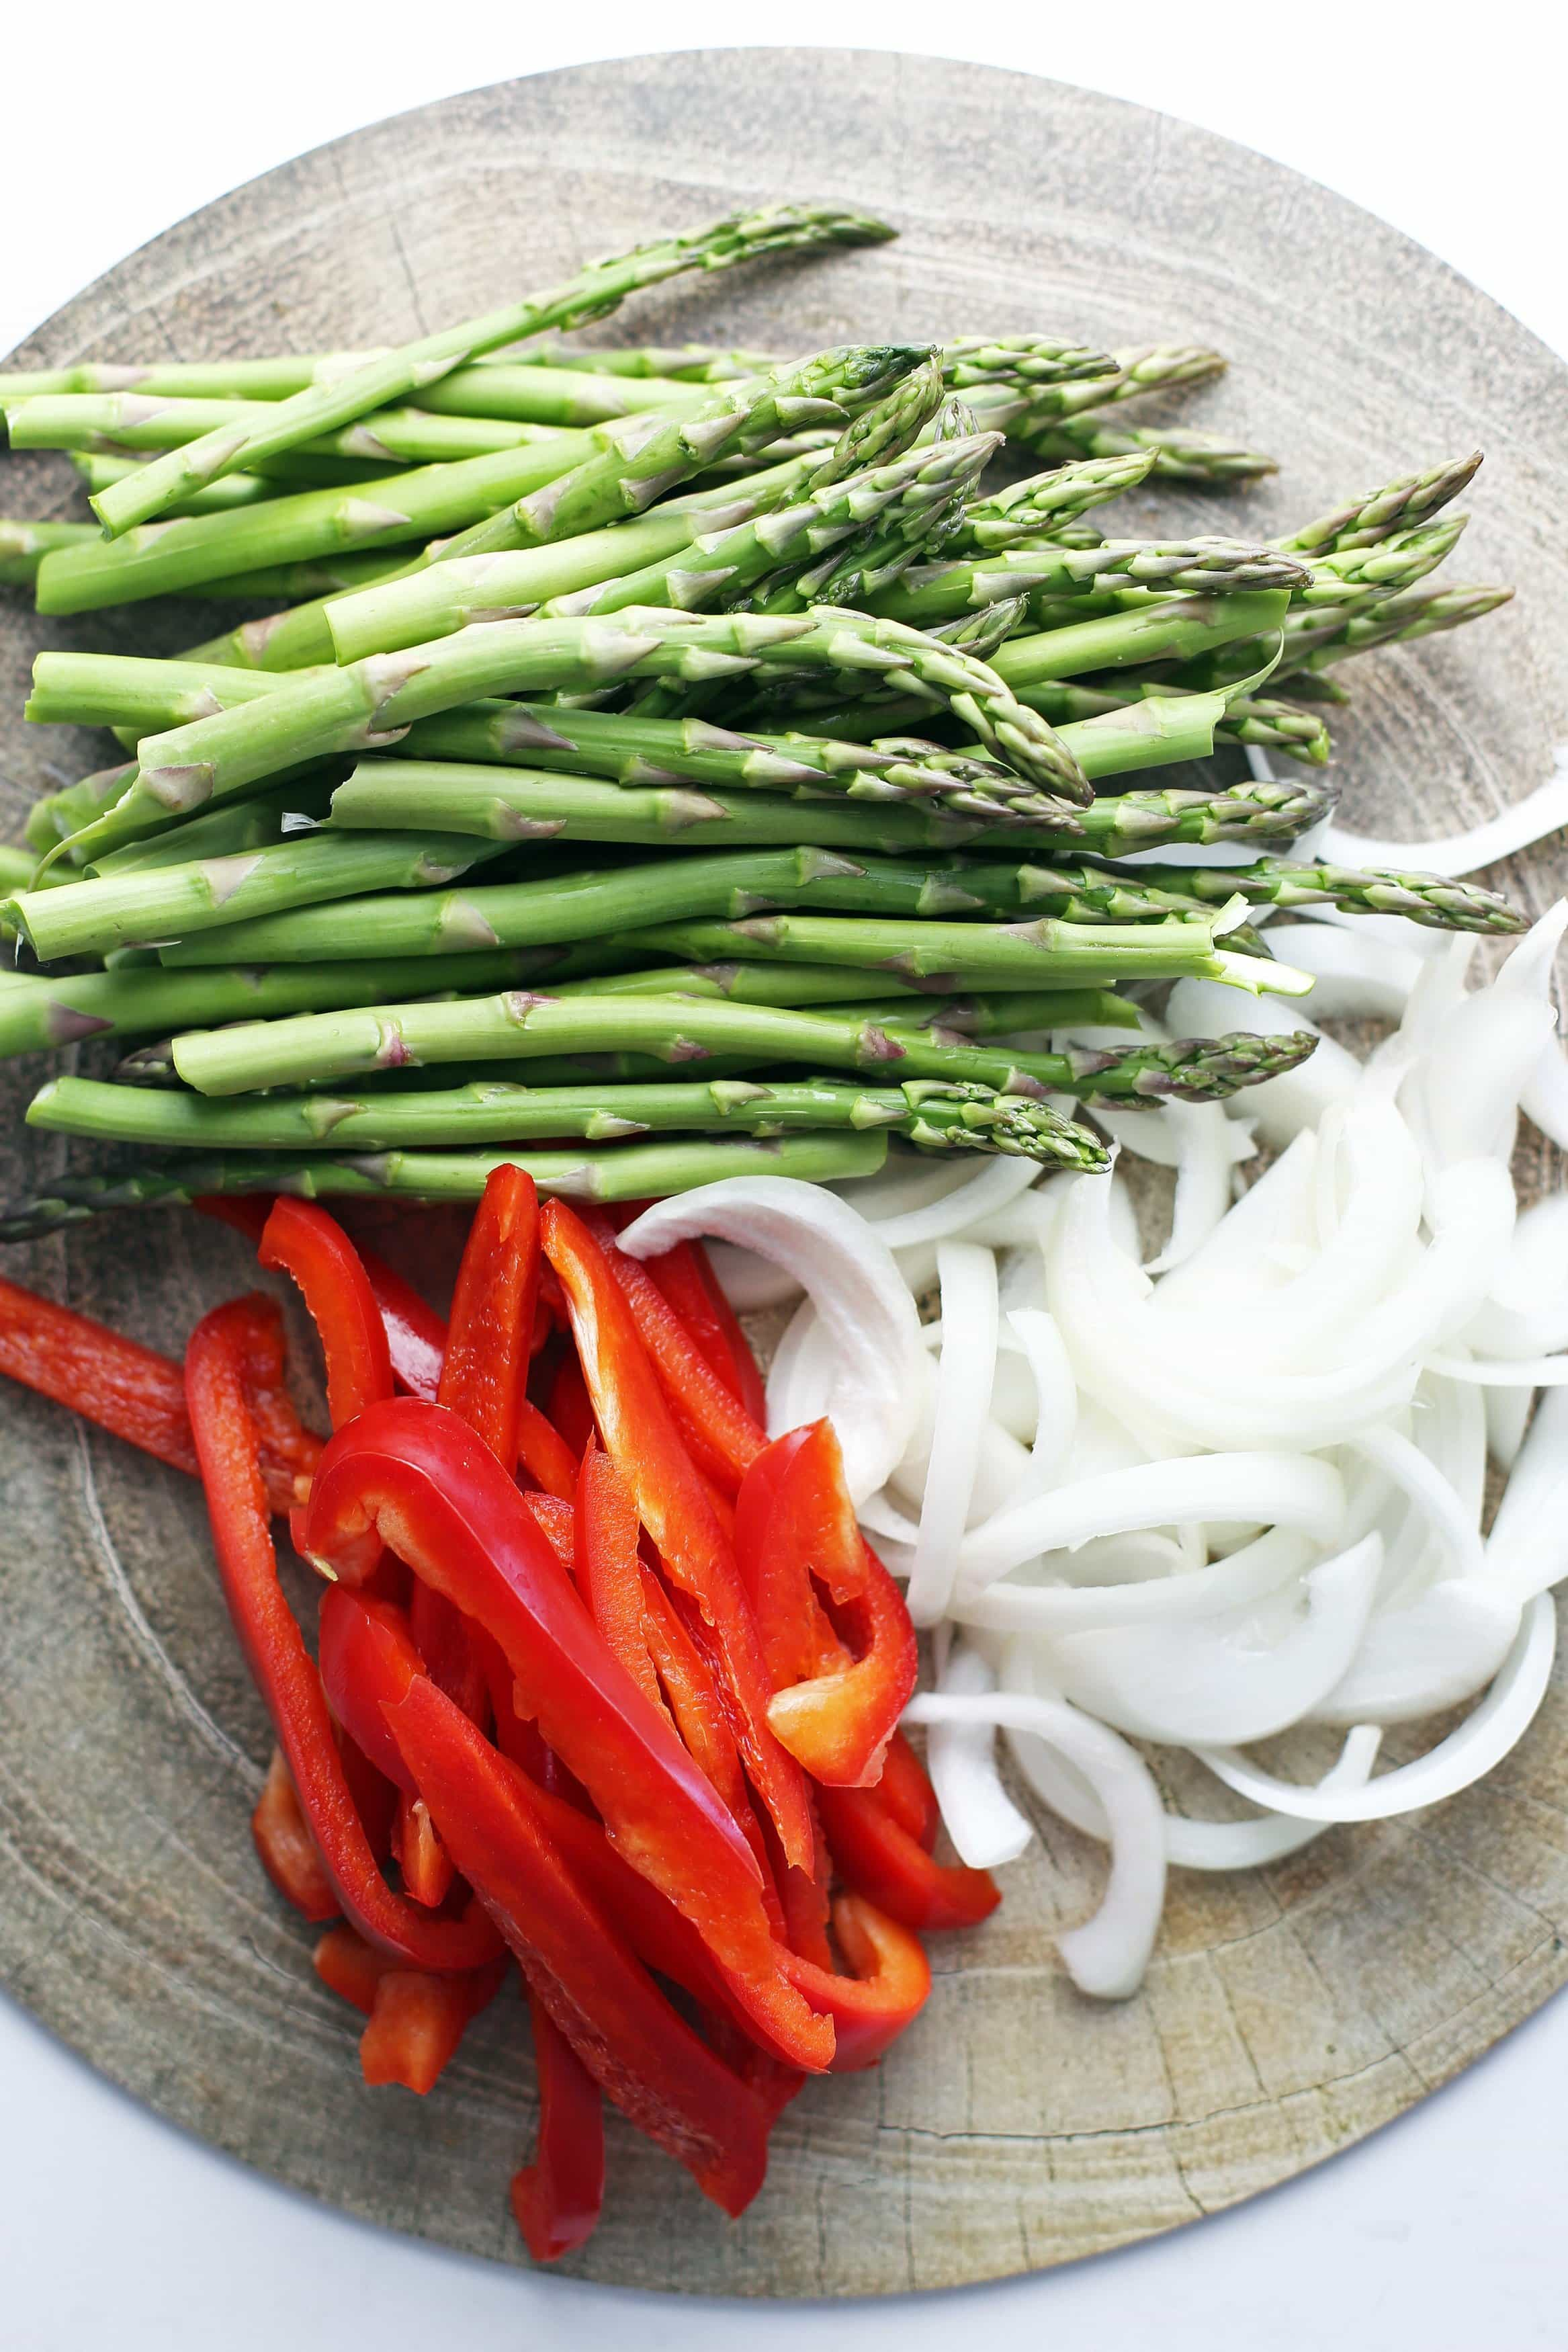 Sliced red bell pepper, sliced white onion, and trimmed asparagus on a round wooden platter.